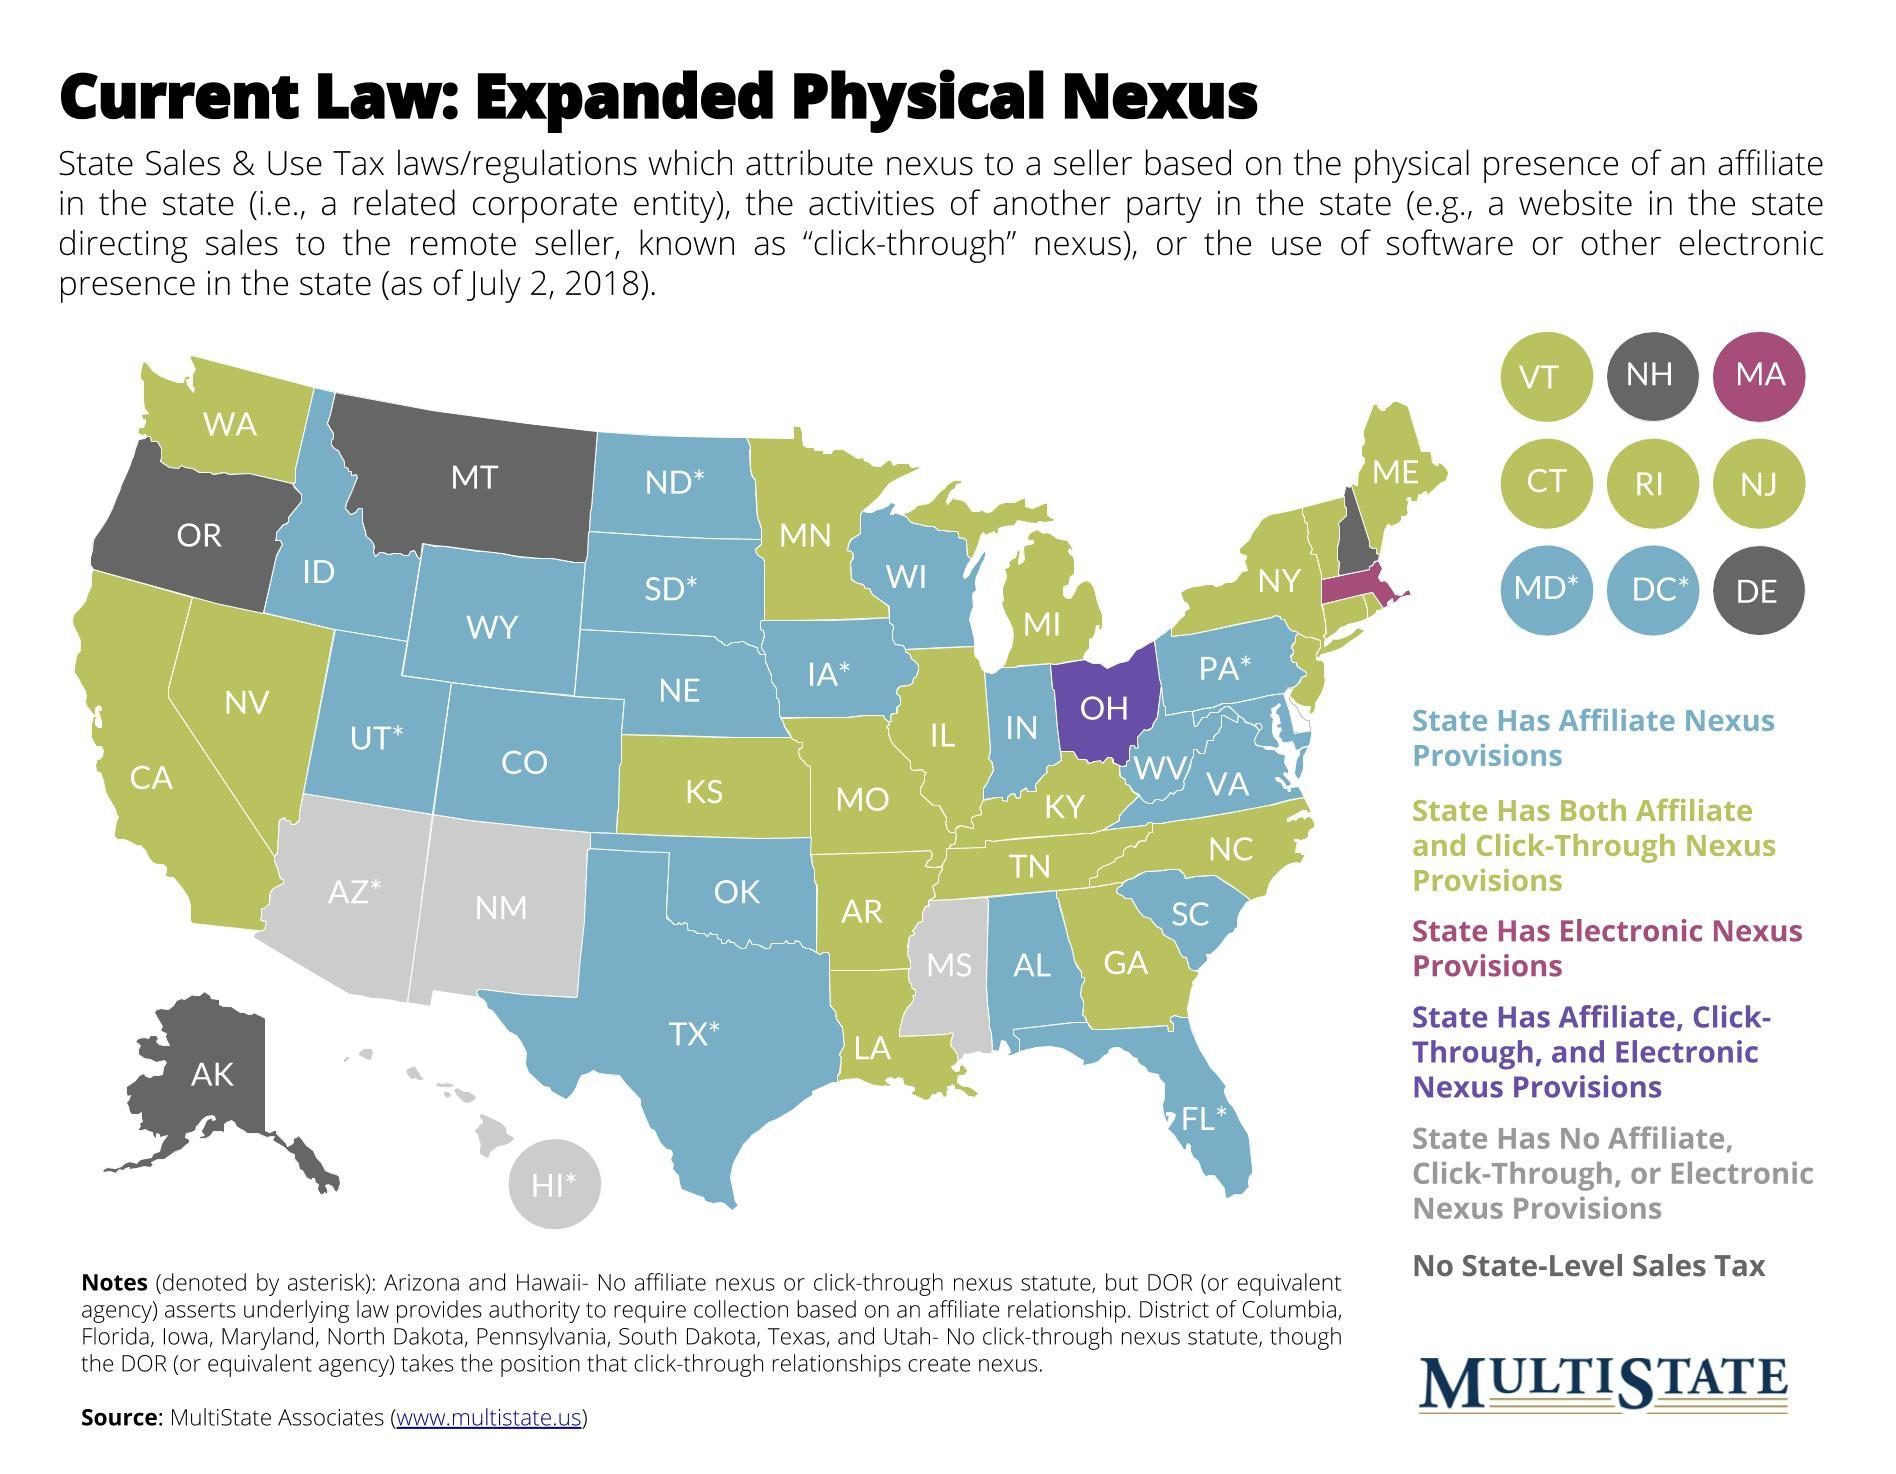 Current Law_ Expanded Physical Nexus (7_2_2018)